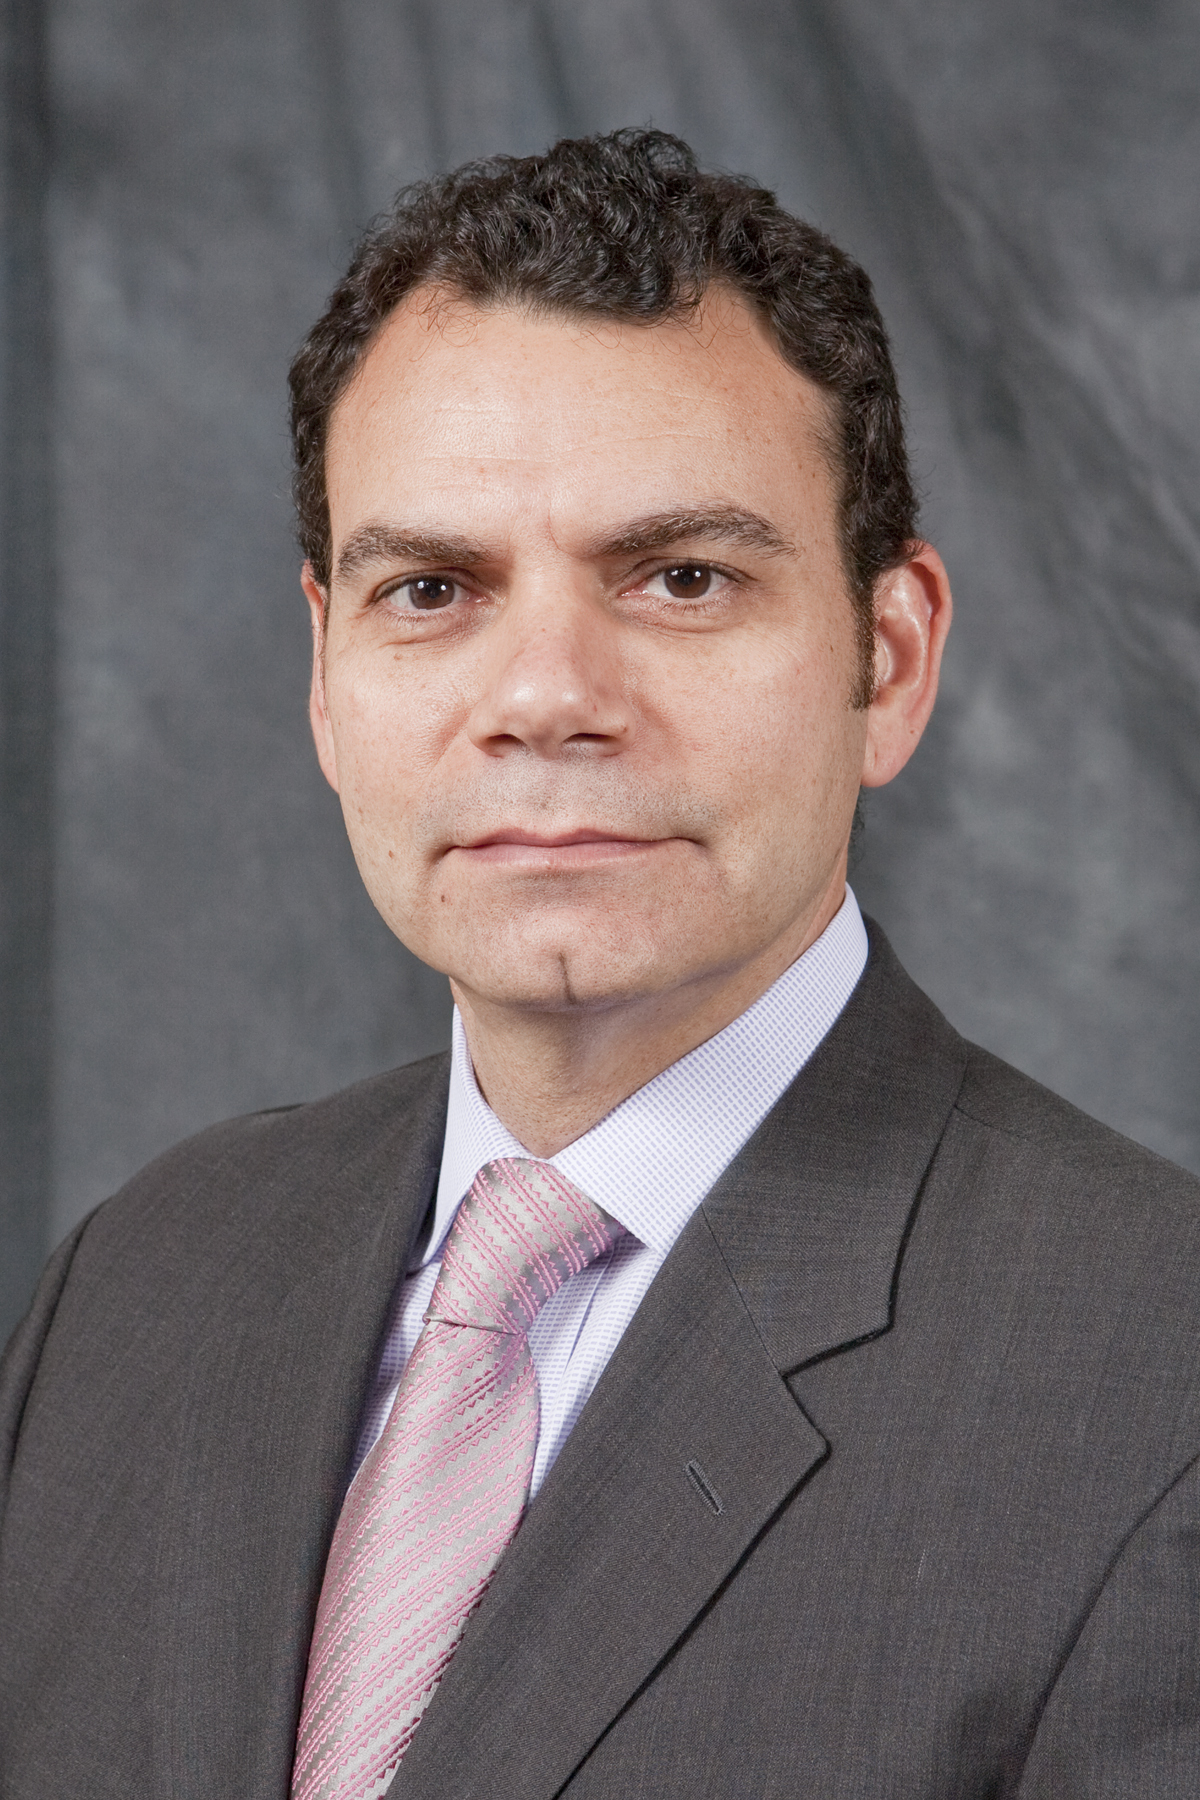 Eduardo D  Rodriguez, MD, DDS, Named Chair of Department of